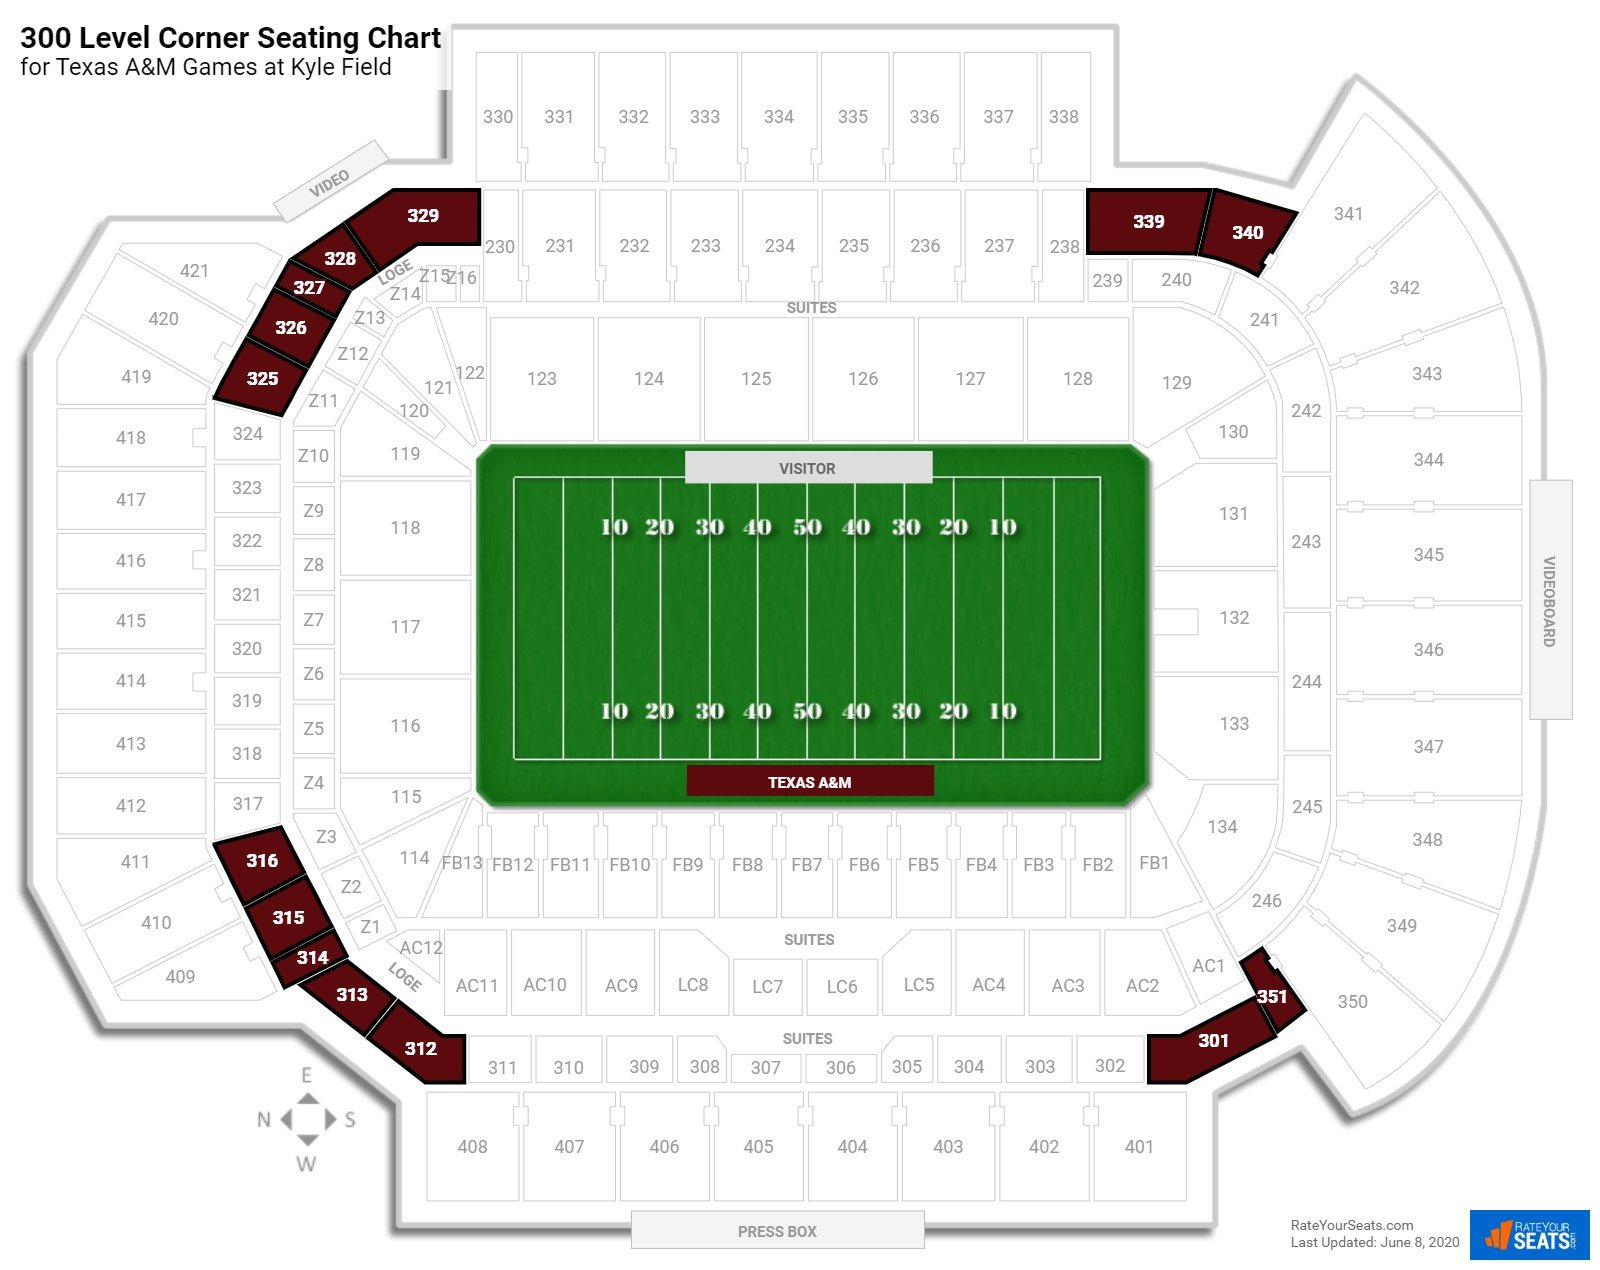 Kyle Field 300 Level Corner seating chart